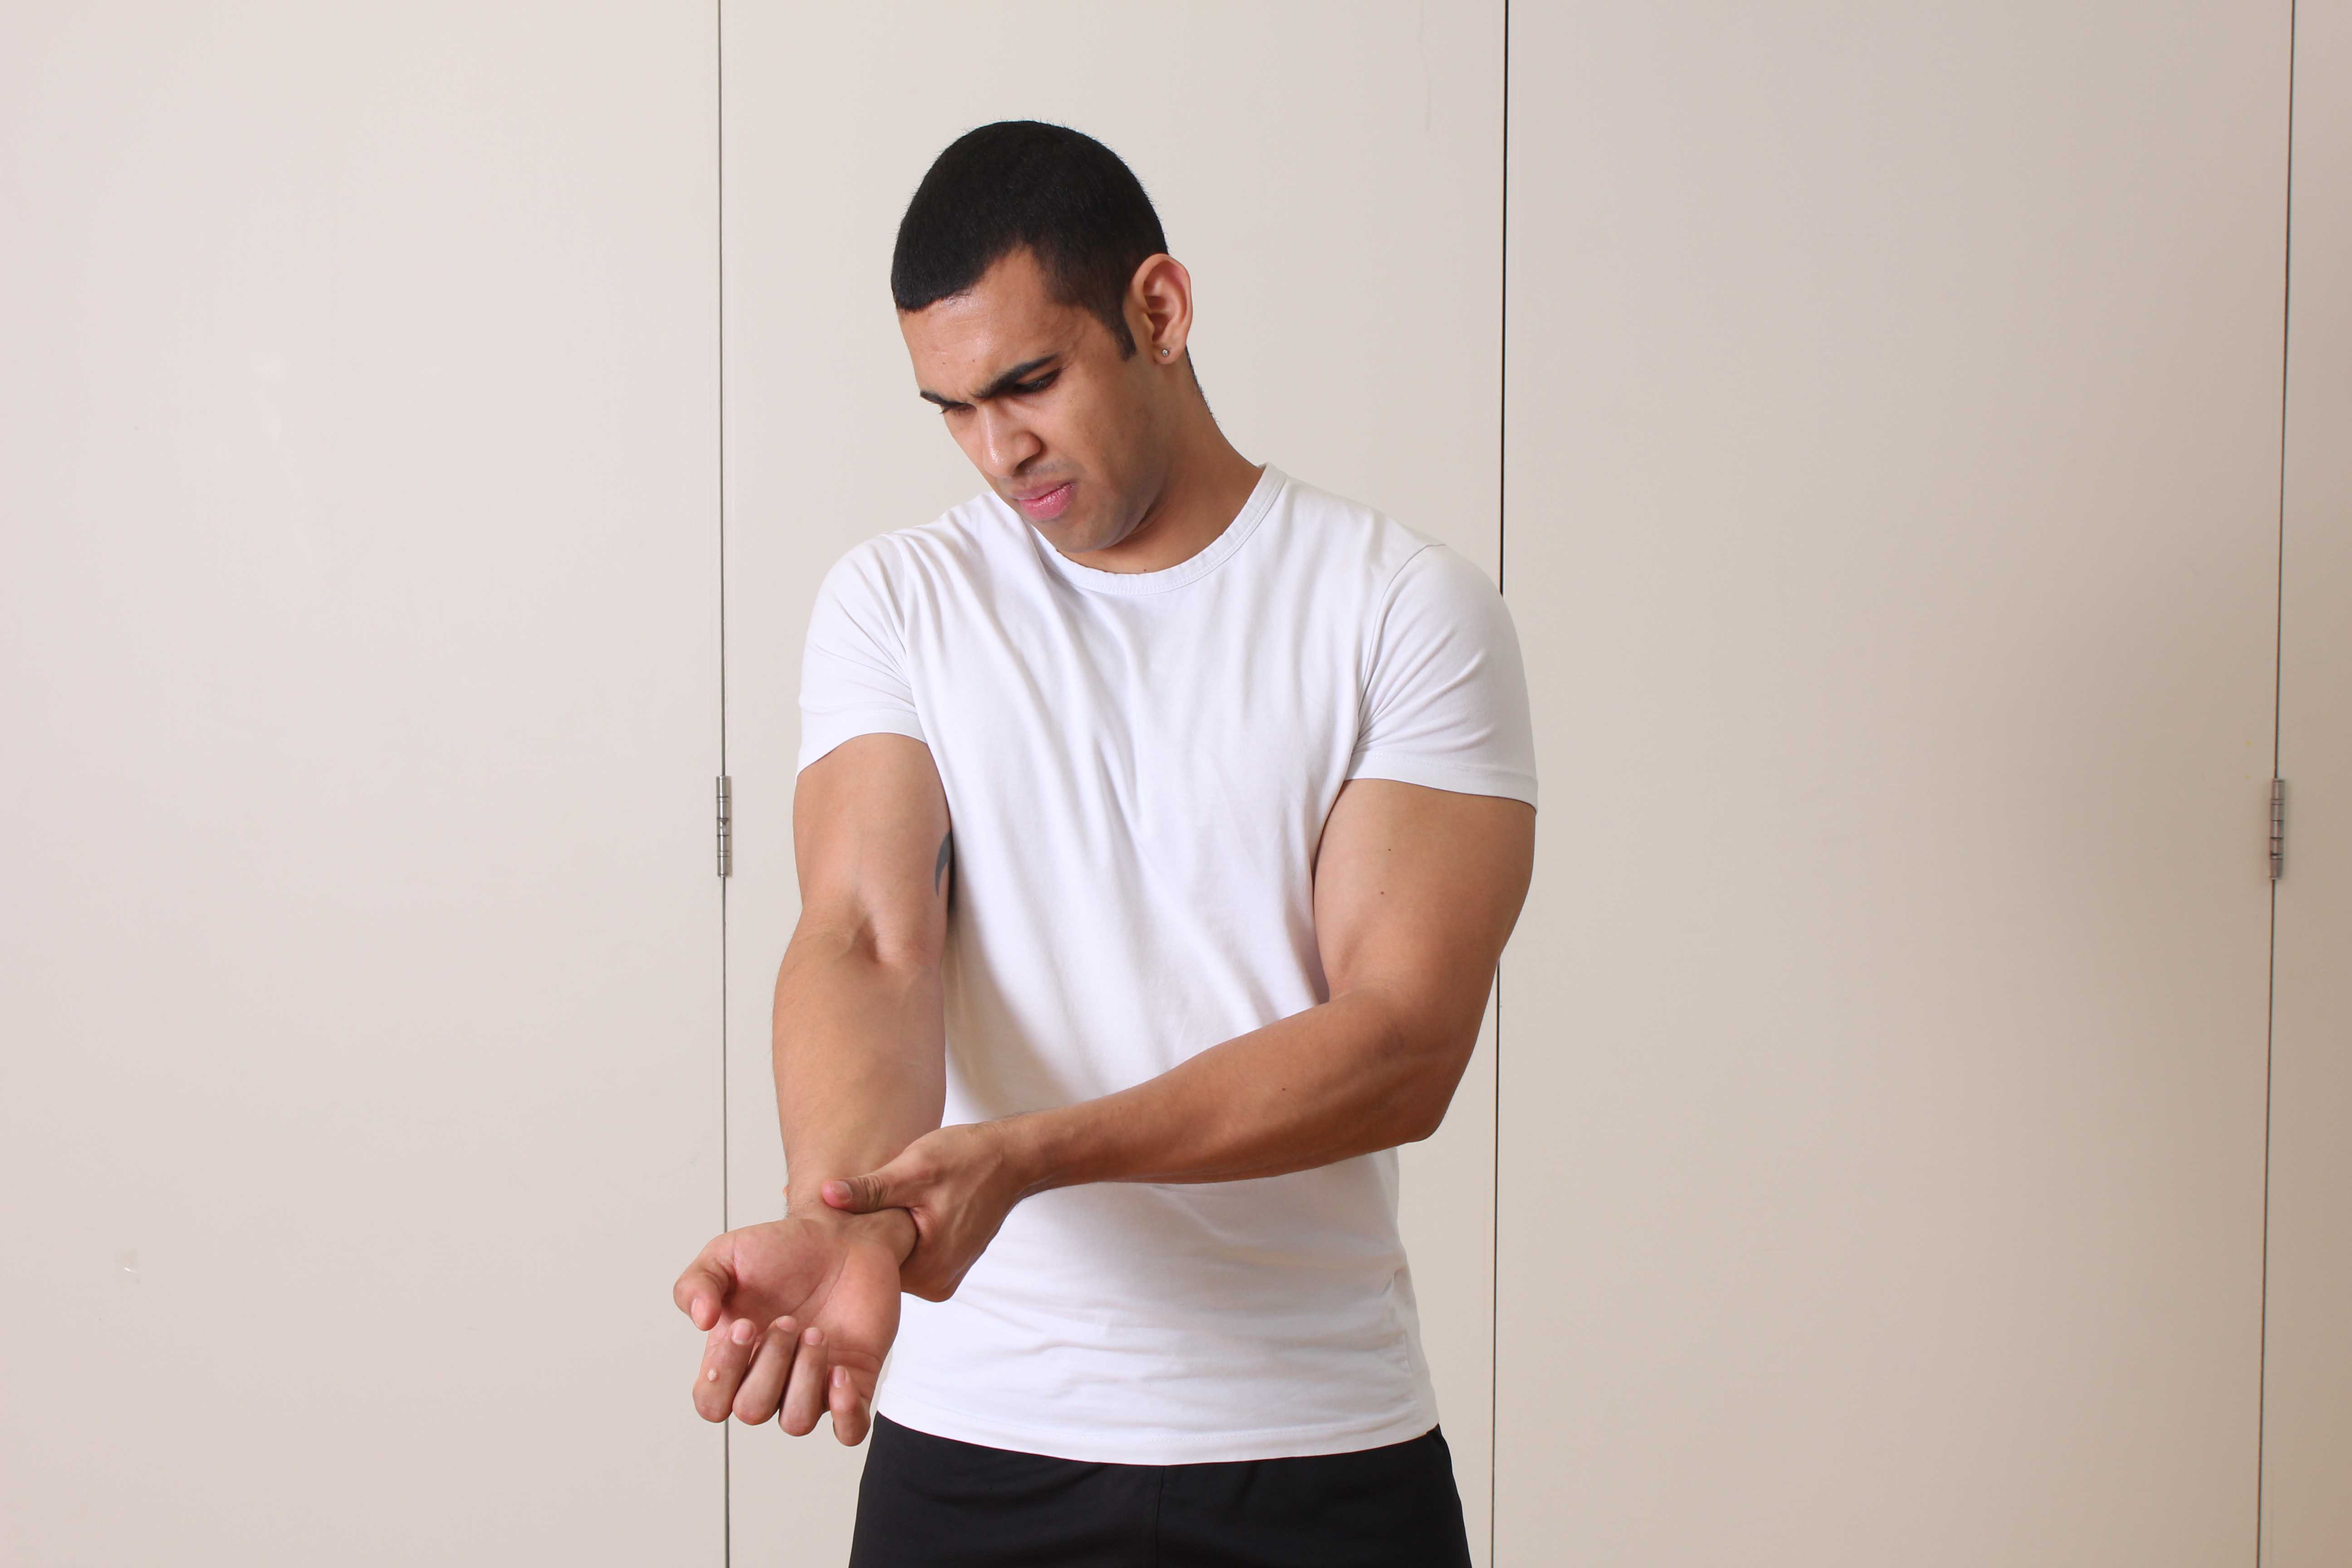 Wrist tendinopathy can be frustrating and unformfortable long term. Book in to see one of our friendly therapists for advice on how to treat it.